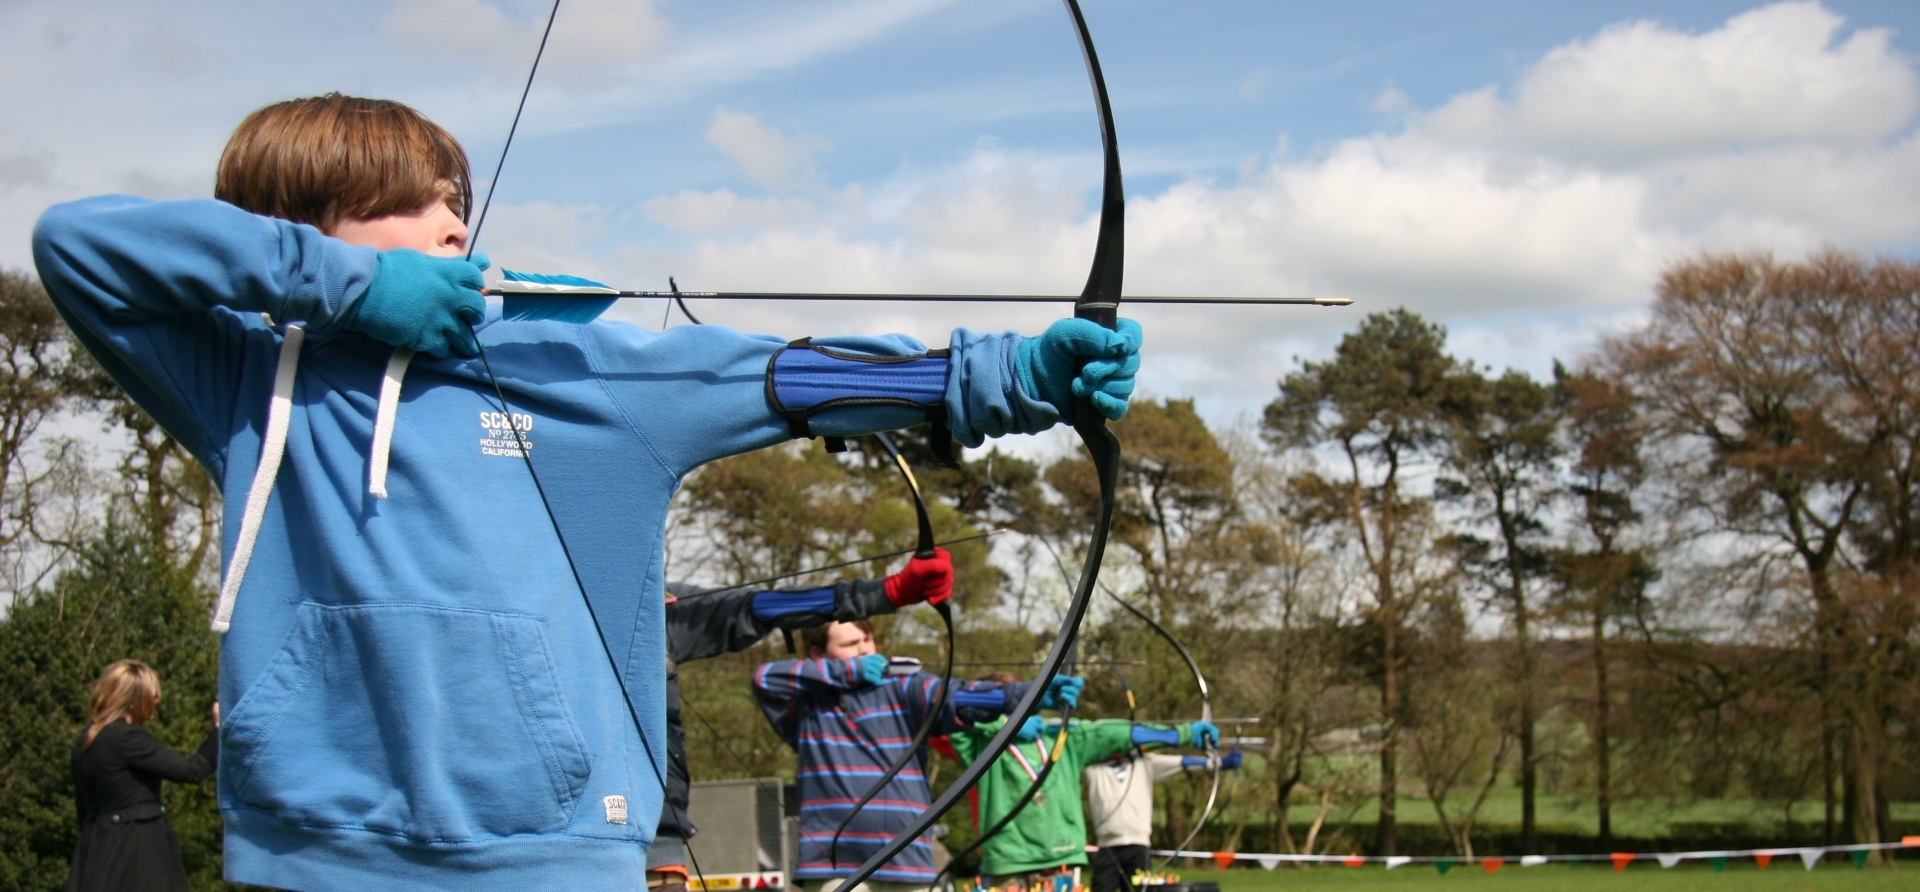 Macclesfield Archery Experience for Two-1